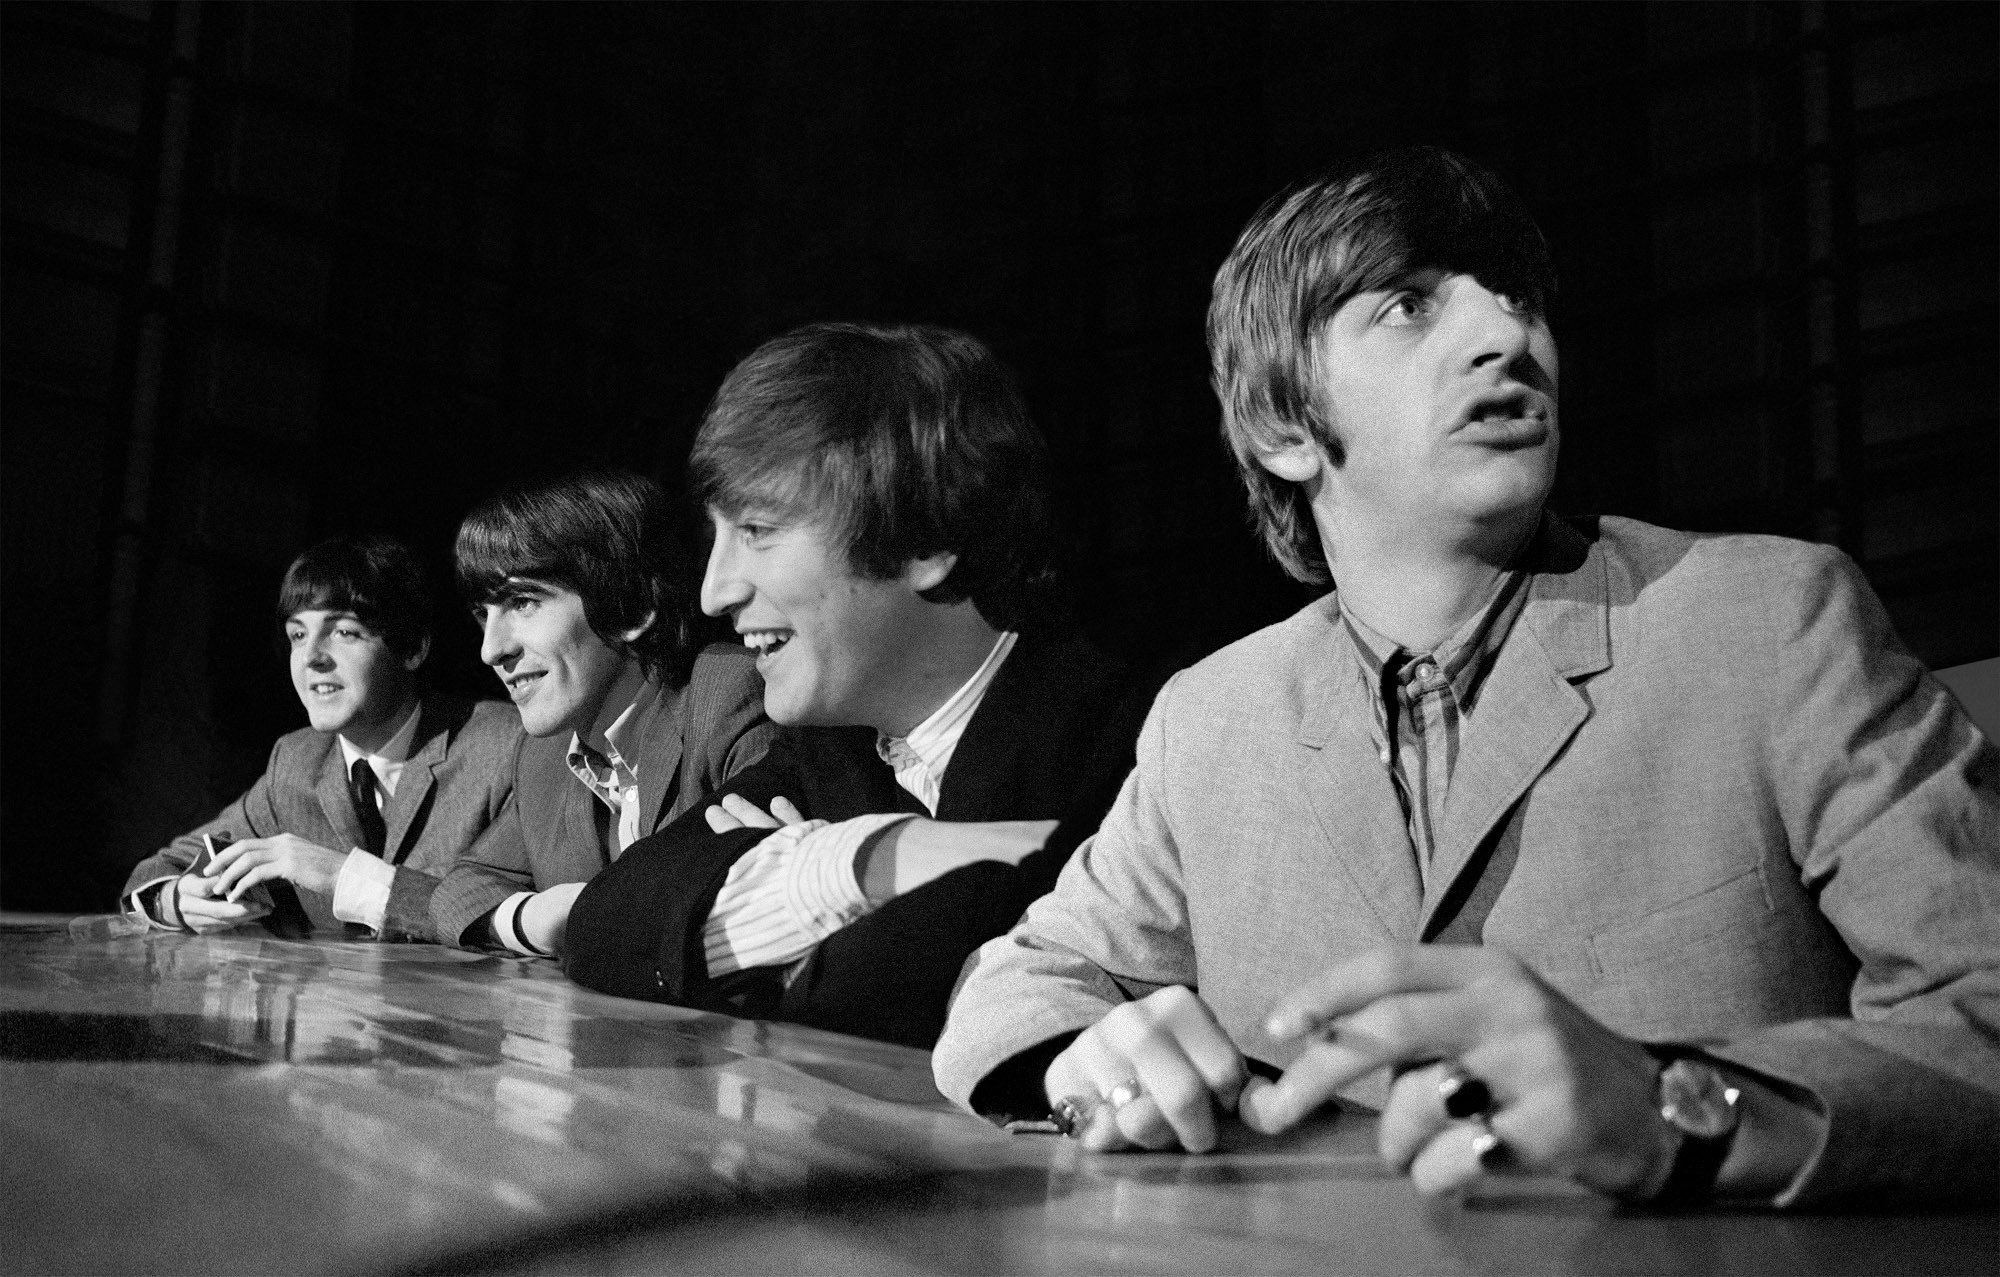 Over 350 amazing unseen images of The Beatles to go up for auction